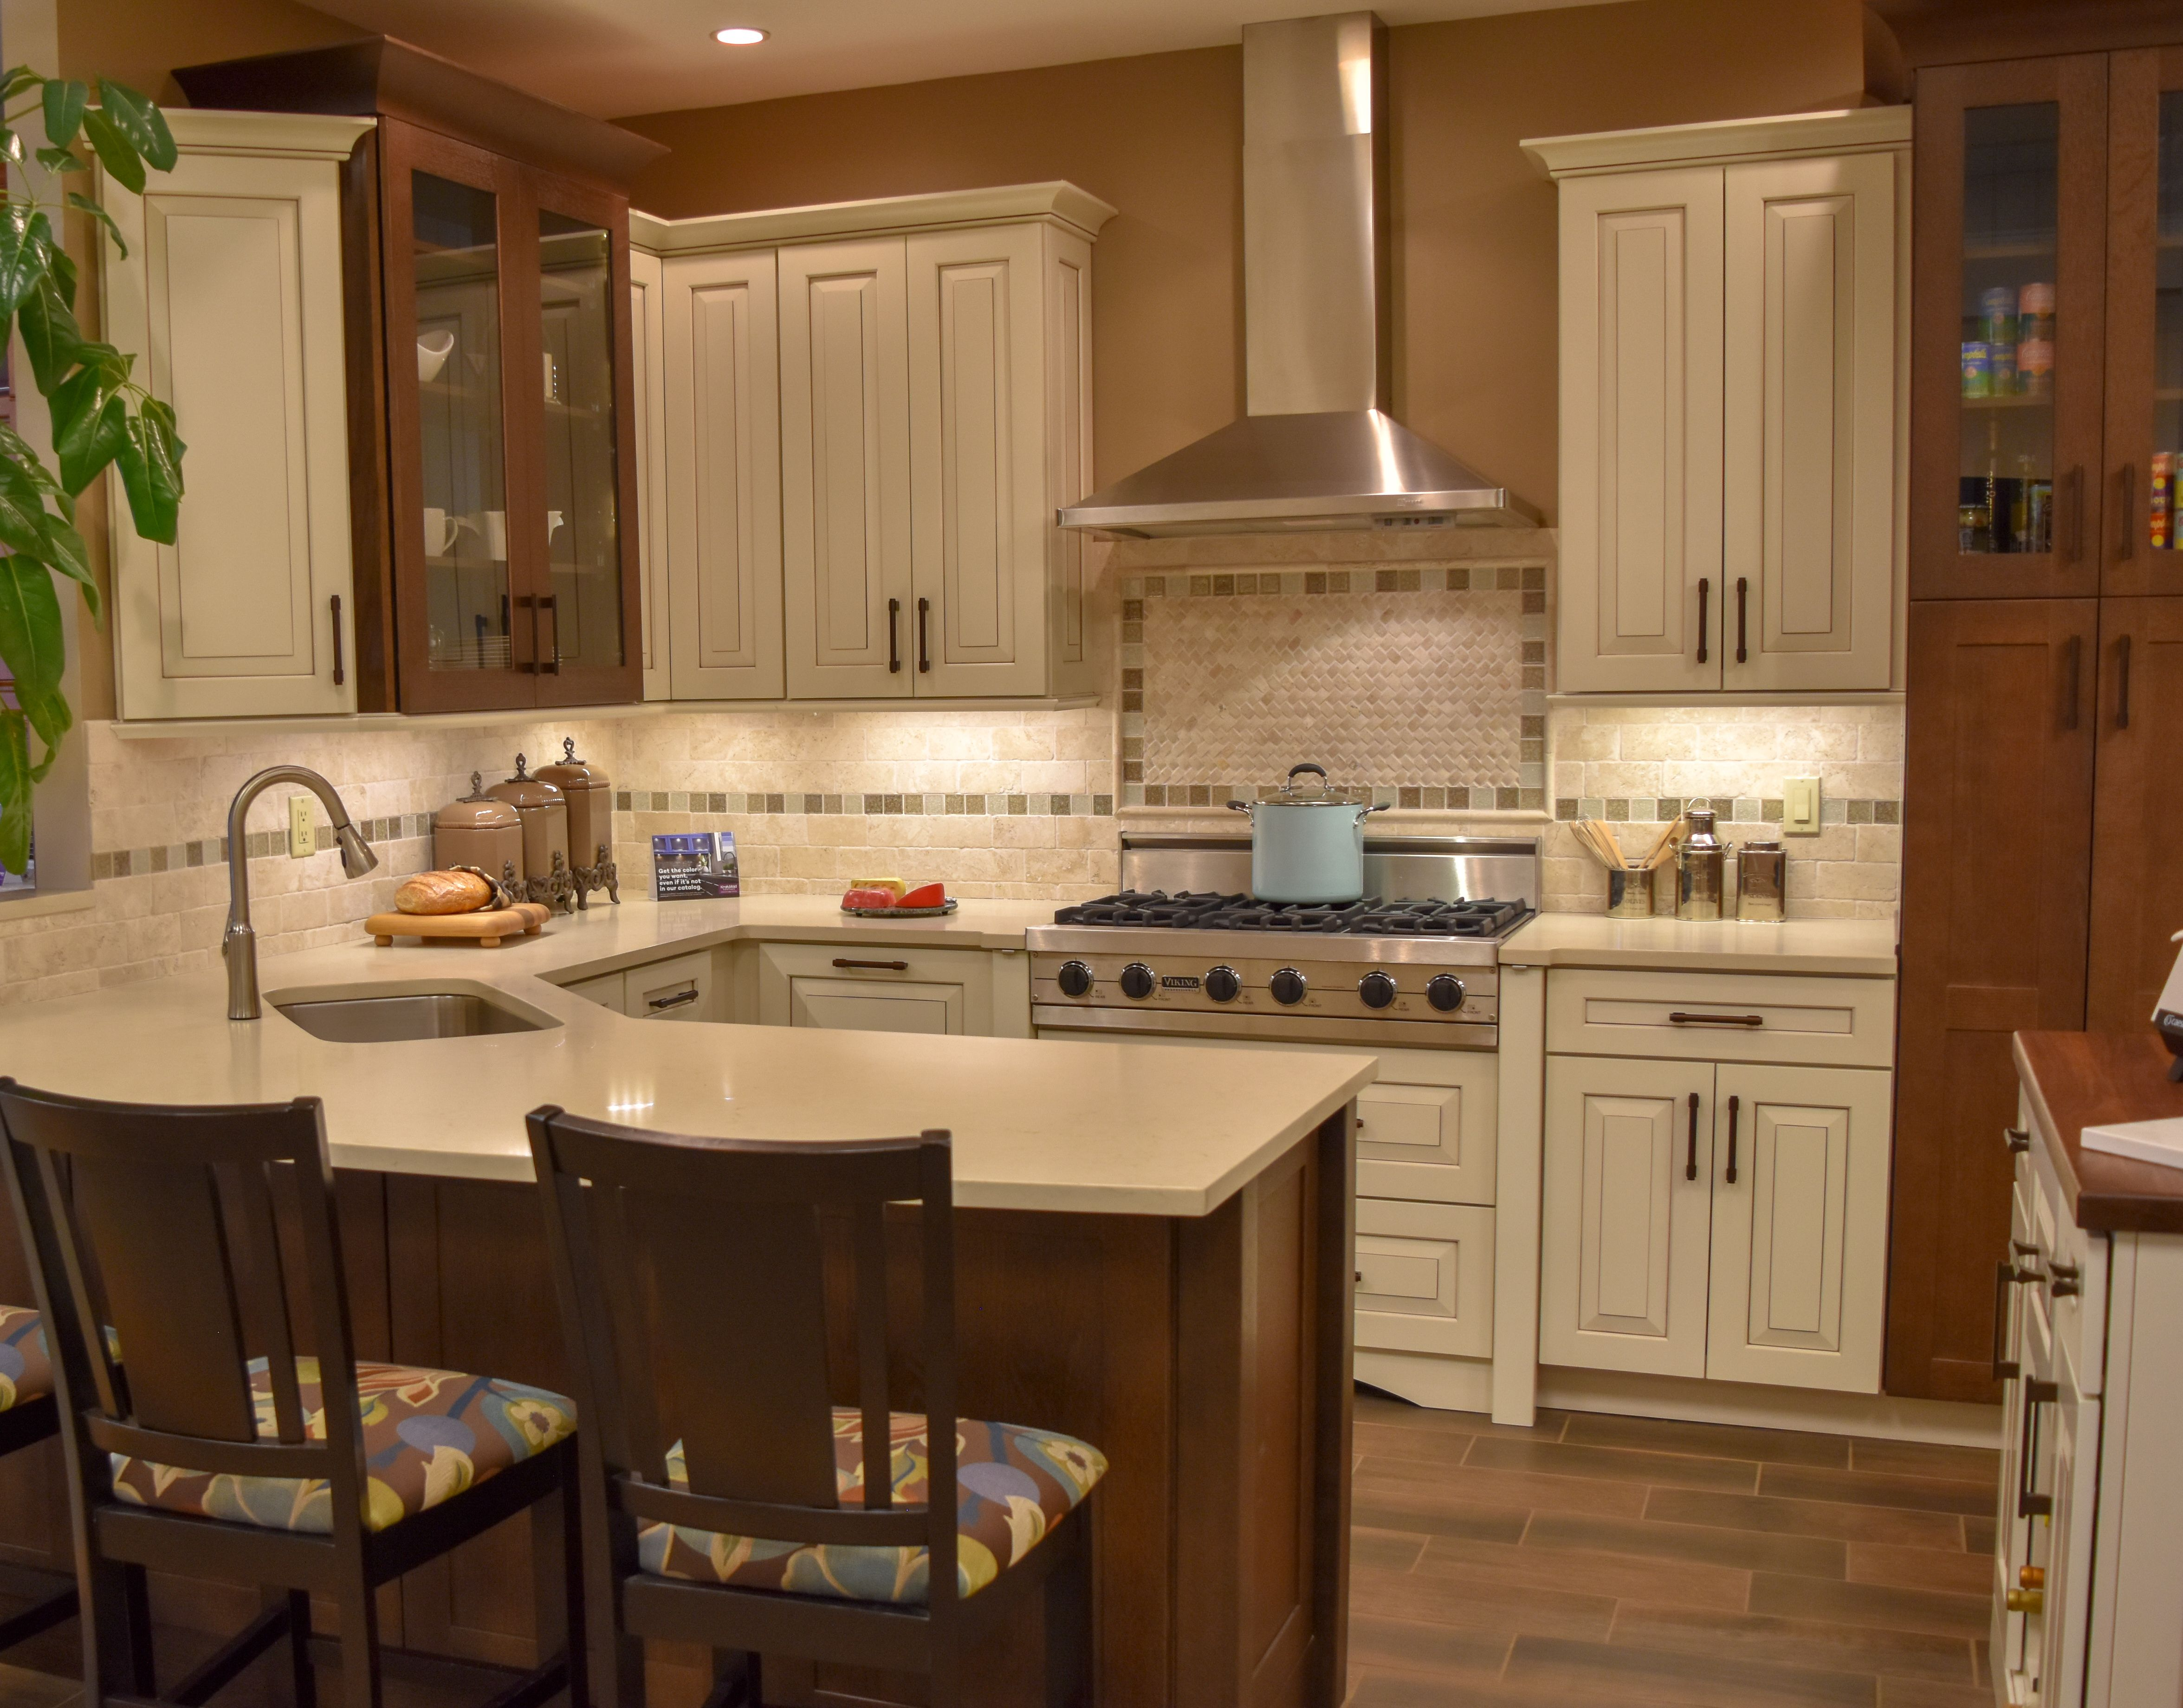 Kraftmaid Durango Maple Cabinets In Canvas With Cocoa Glaze Putnam Oak Accents With Saddle Kitchen Remodel Kitchen Bathroom Remodel Kitchen And Bath Showroom